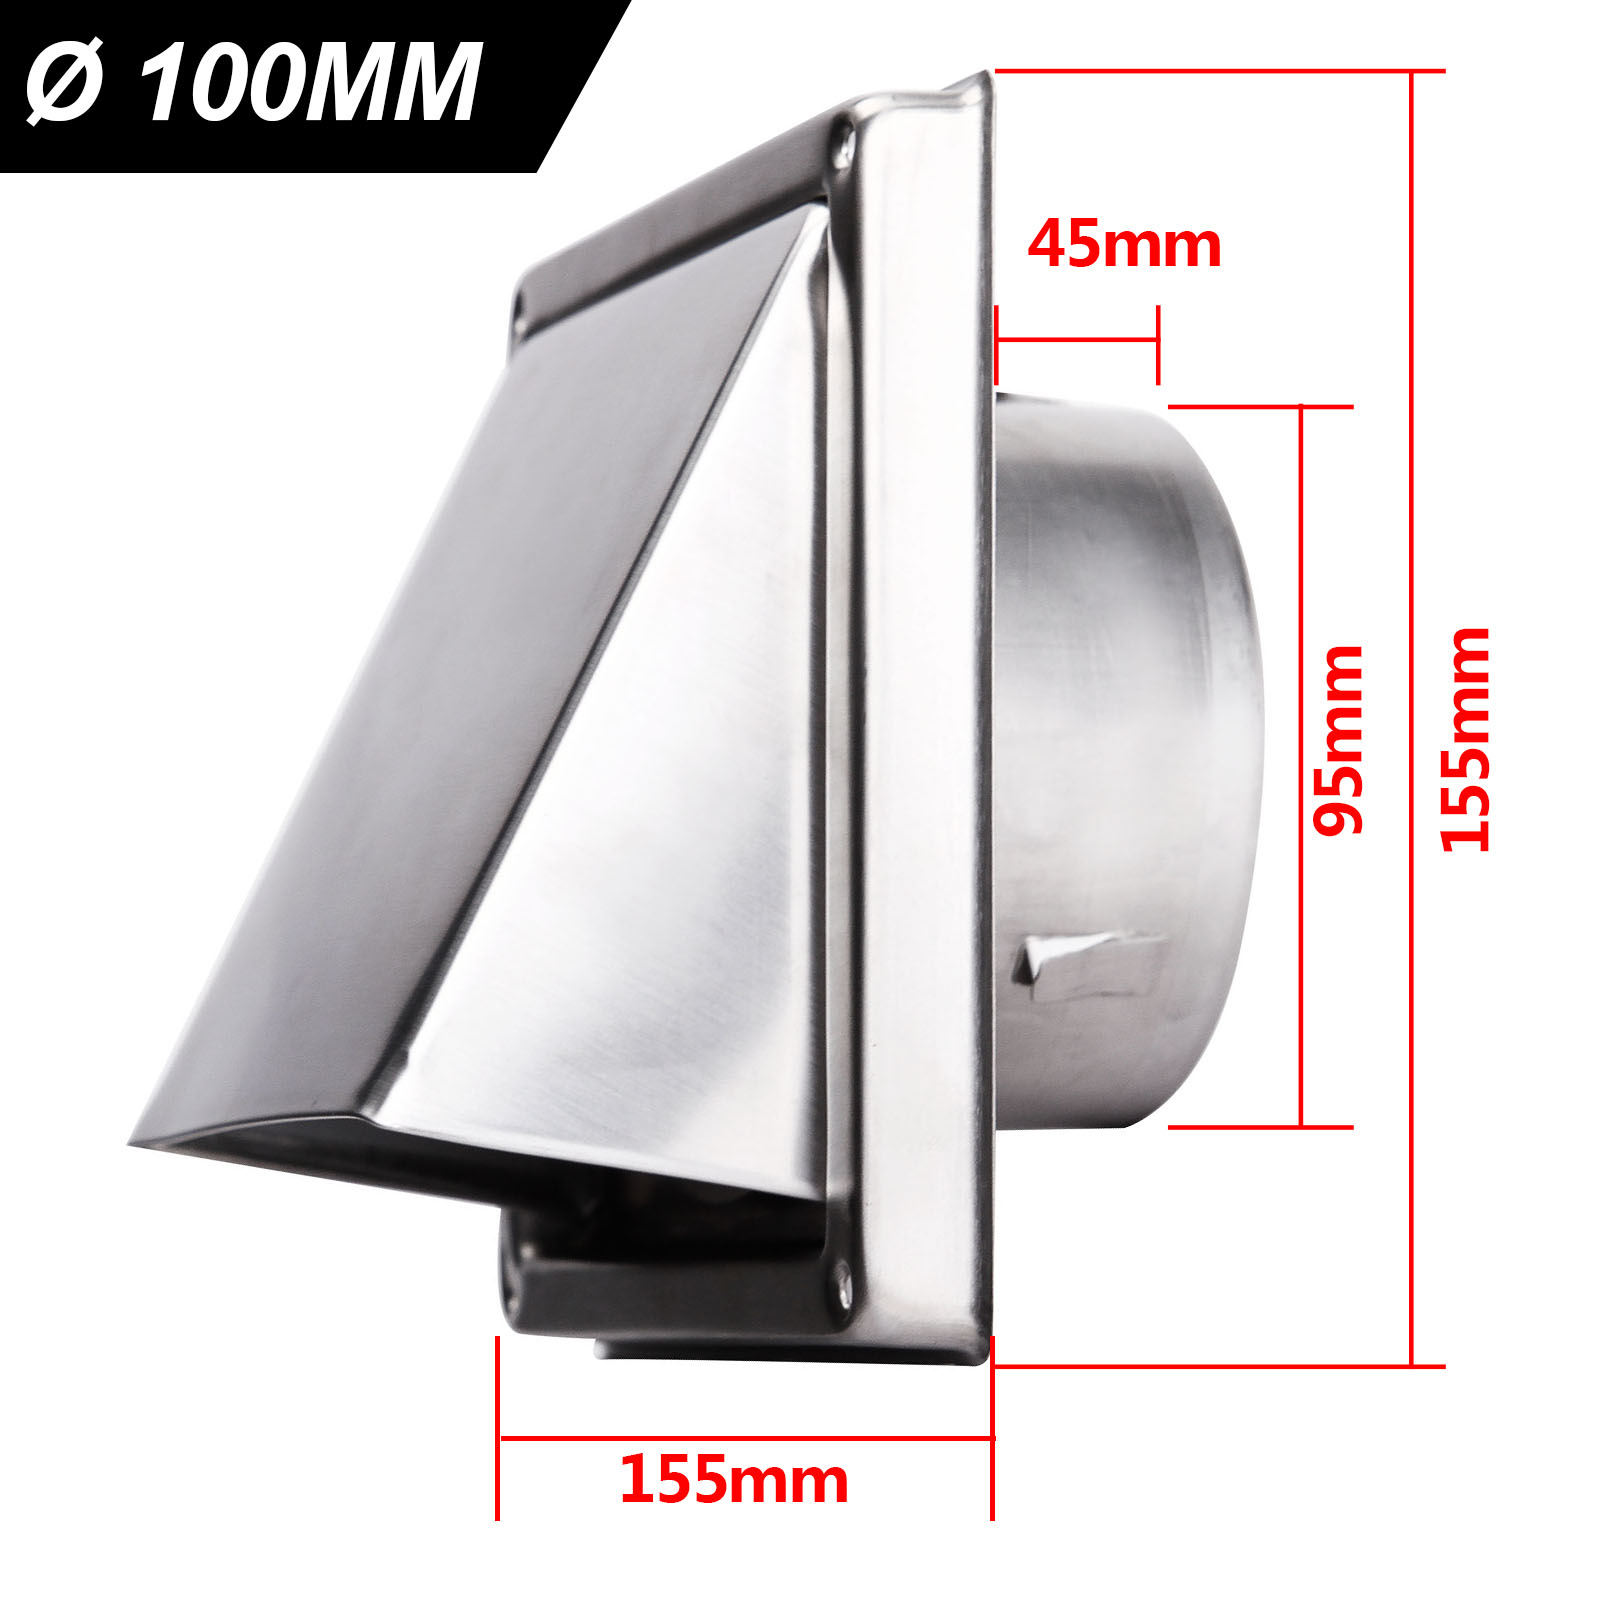 Exhaust Air Wall Box Wall Outlet 100 125 150 mm Stainless Steel Self Closing